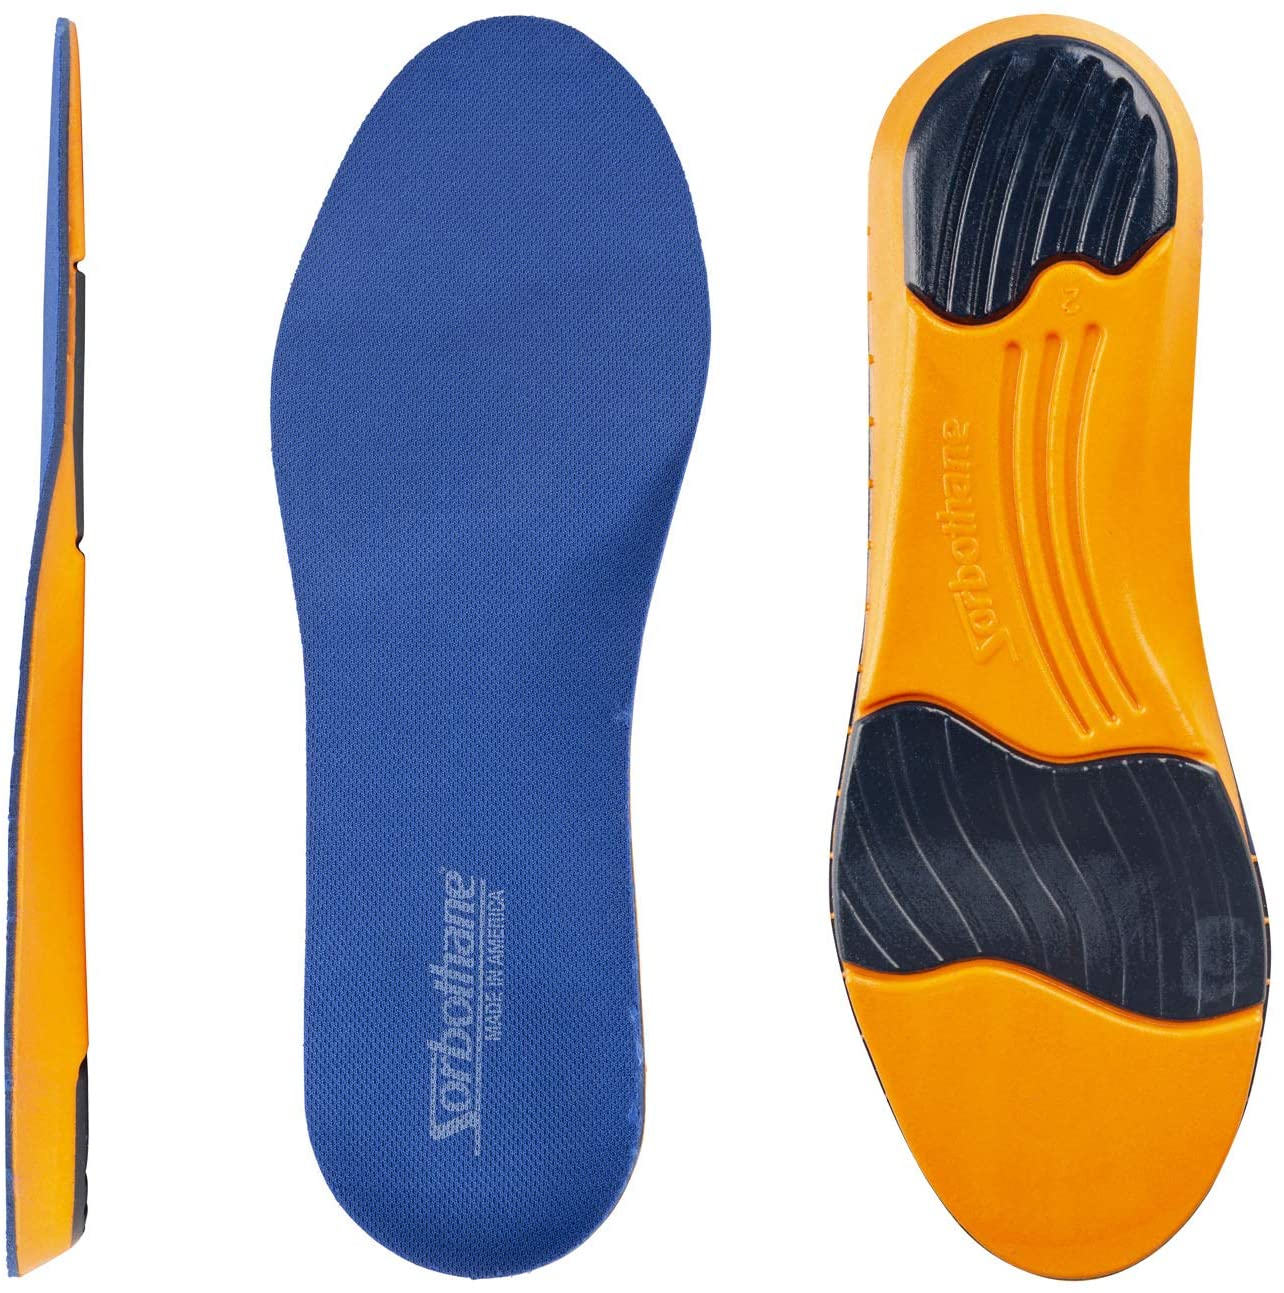 RxSorbo Sorbothane Ultra Work Sport Insole - Men's 14-15